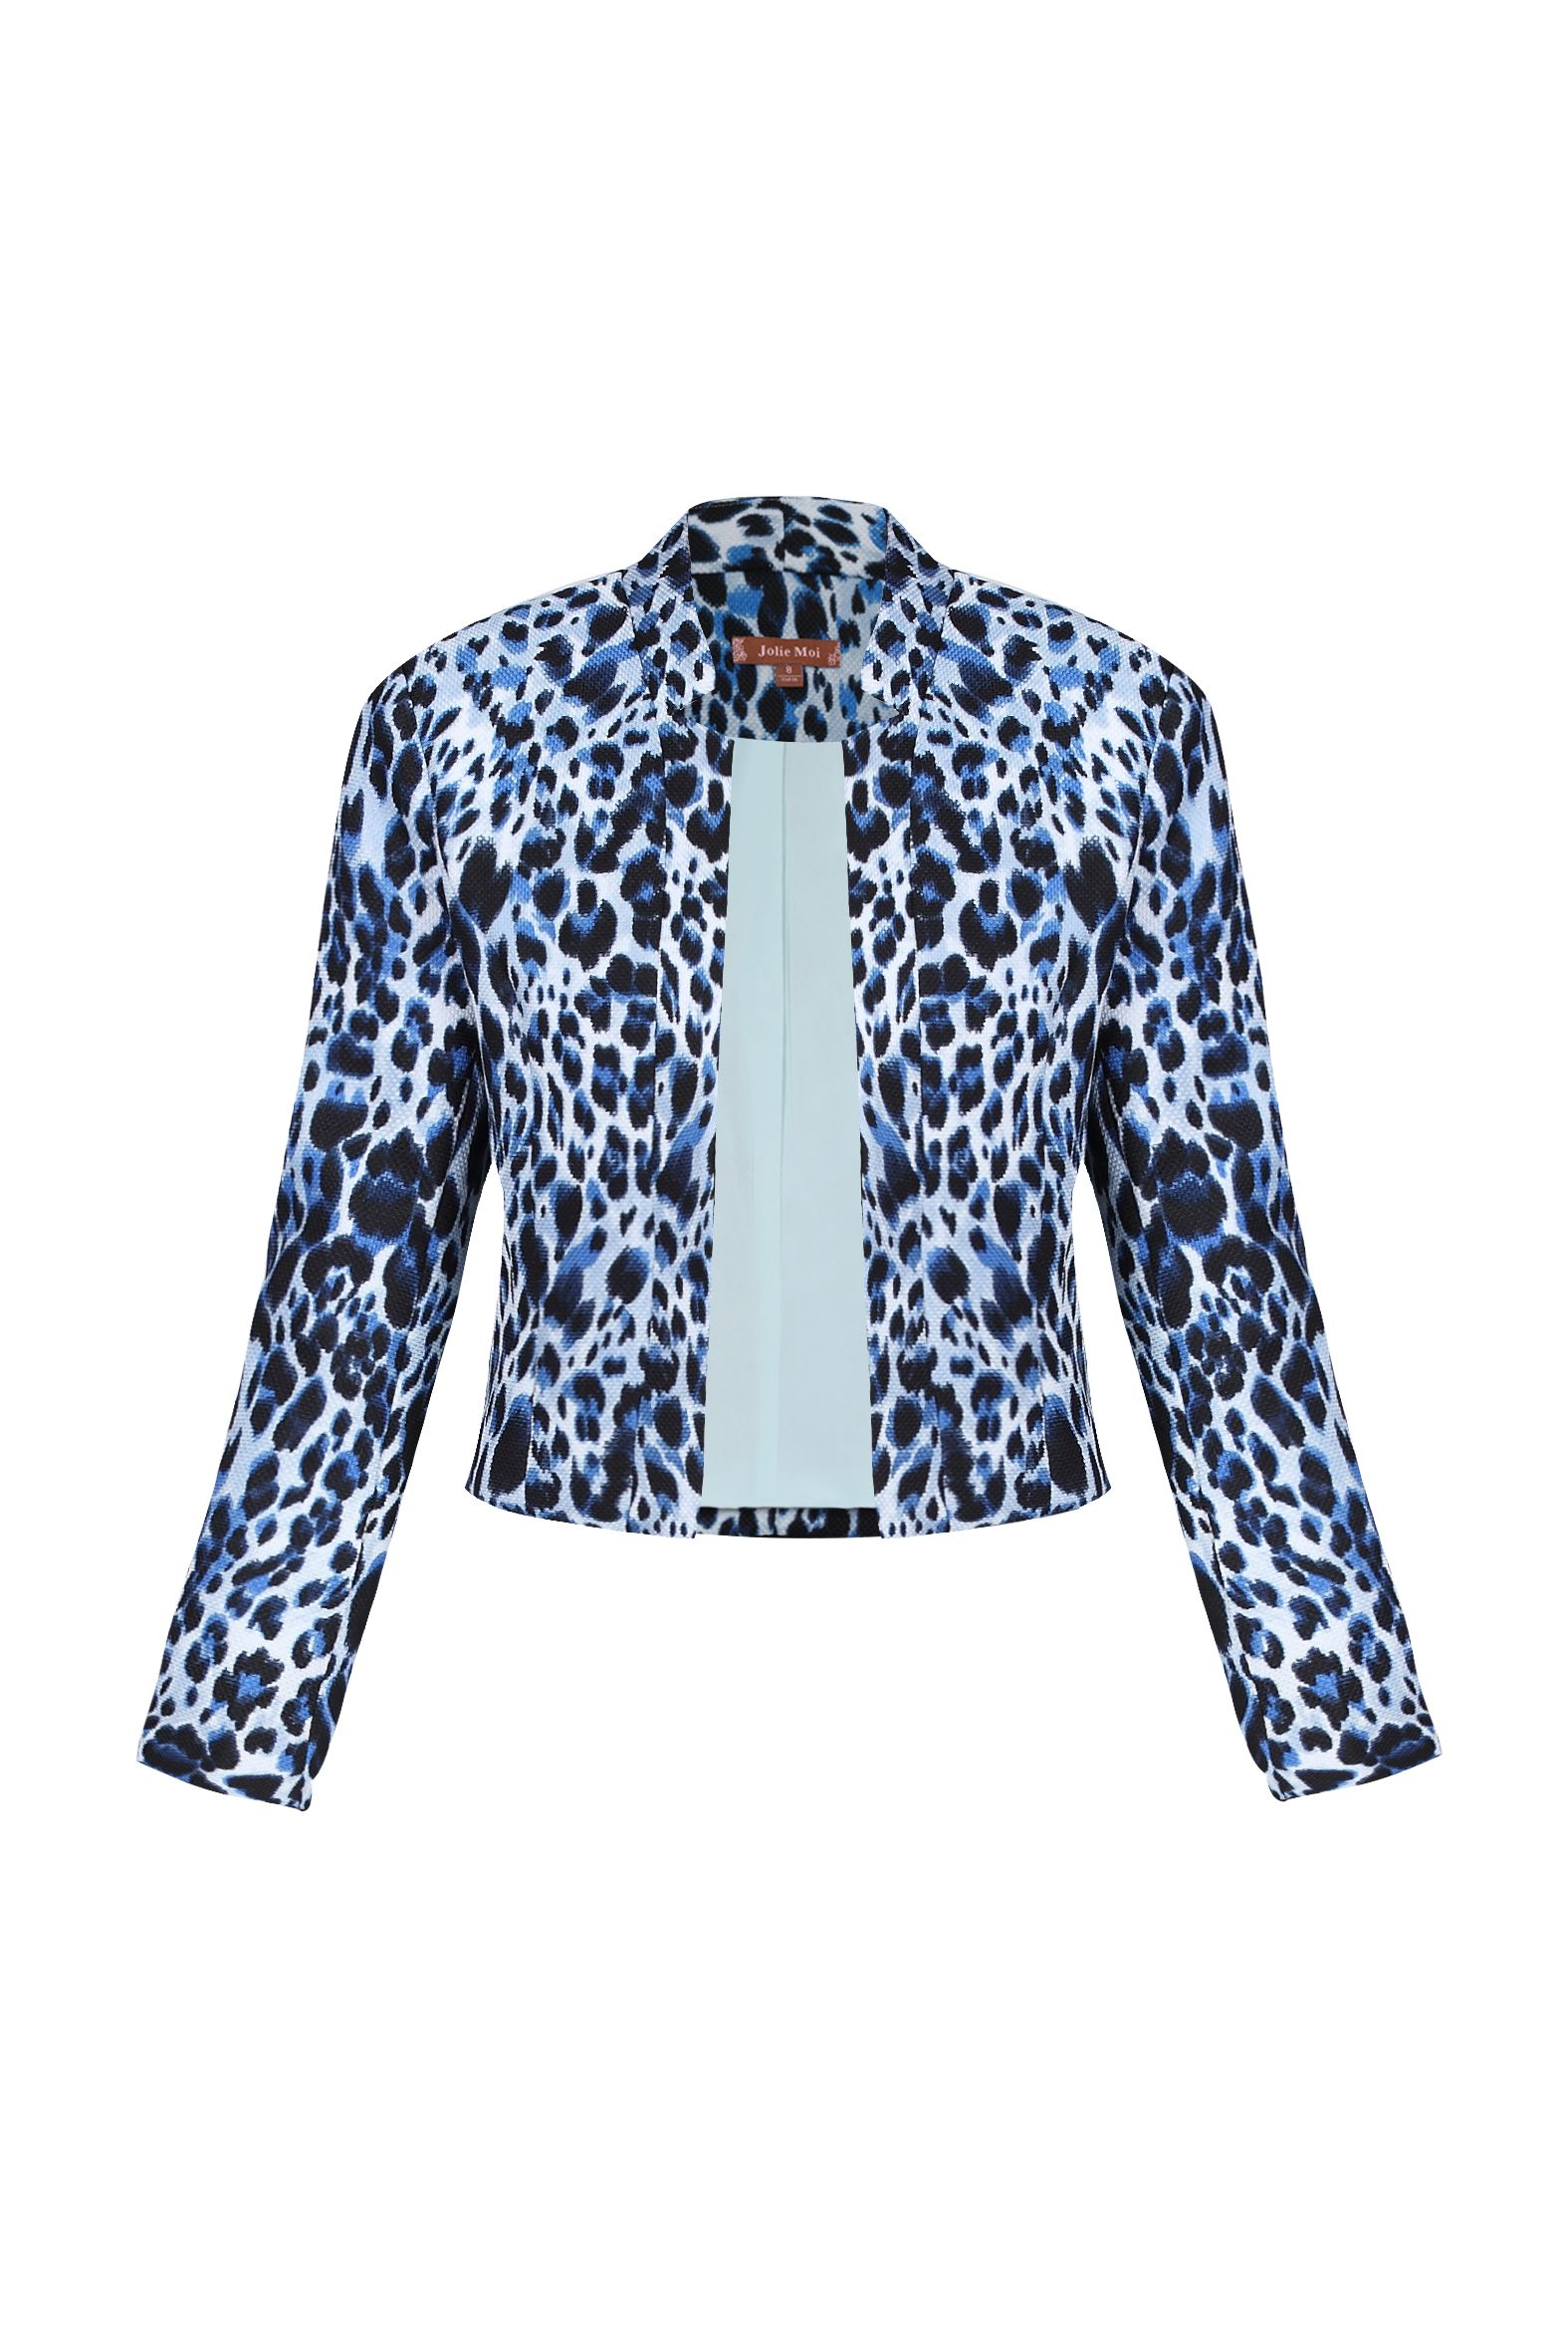 Jolie Moi Leopard Print Light Jacket, Multi-Coloured